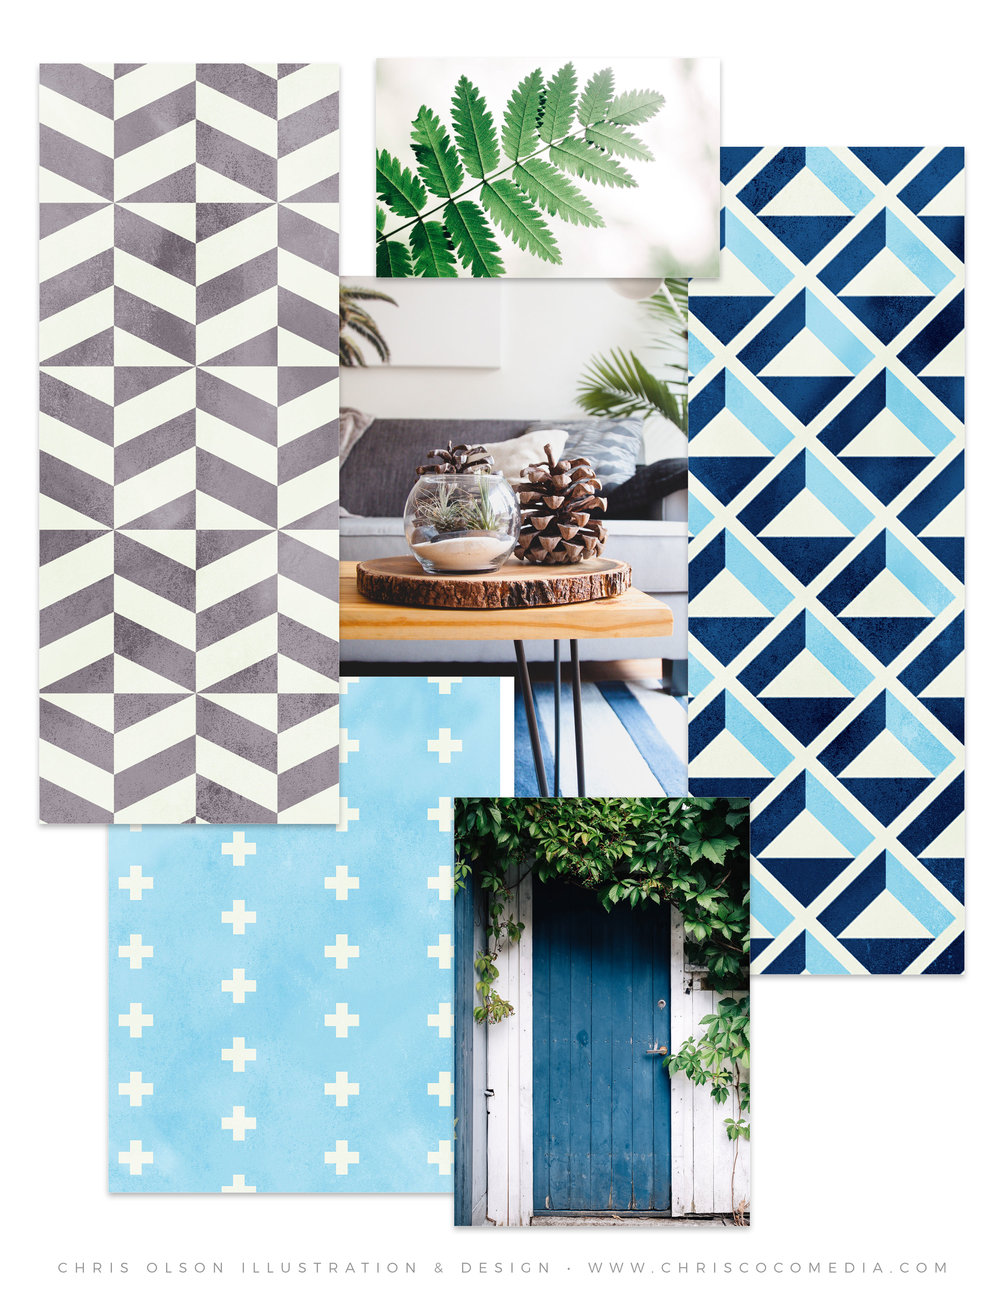 Three new Scandinavian-inspired patterns by Chris Olson.